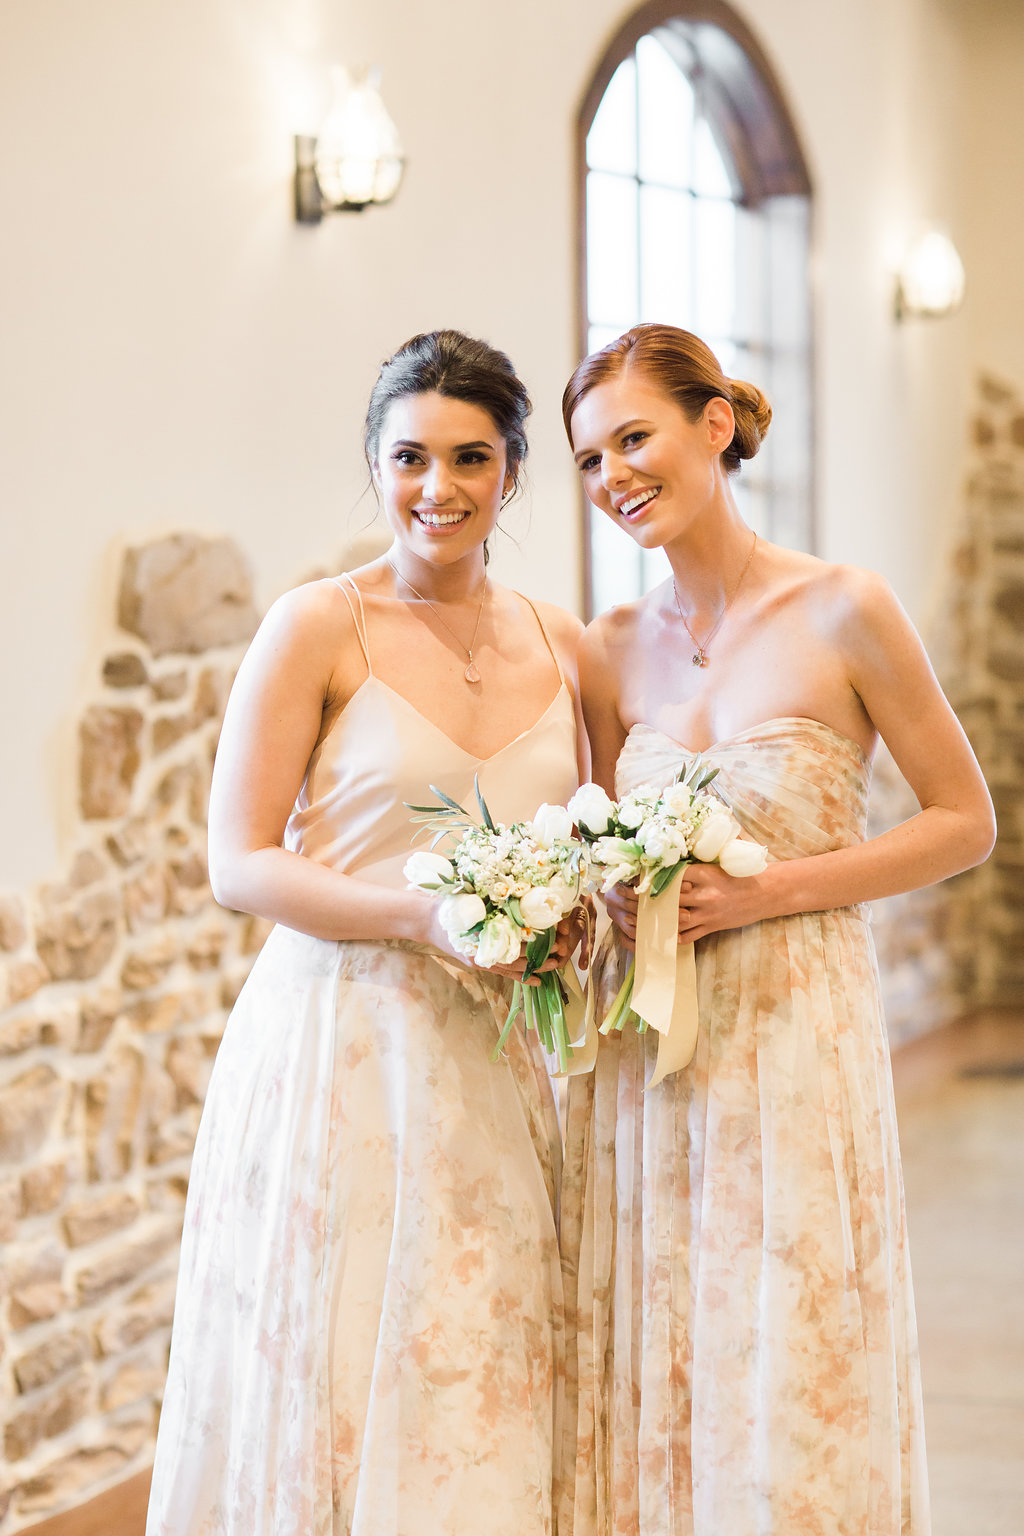 Simple Print Bridesmaid Dresses with Dainty Mini Floral Bouquets and Short Silk Ribbons